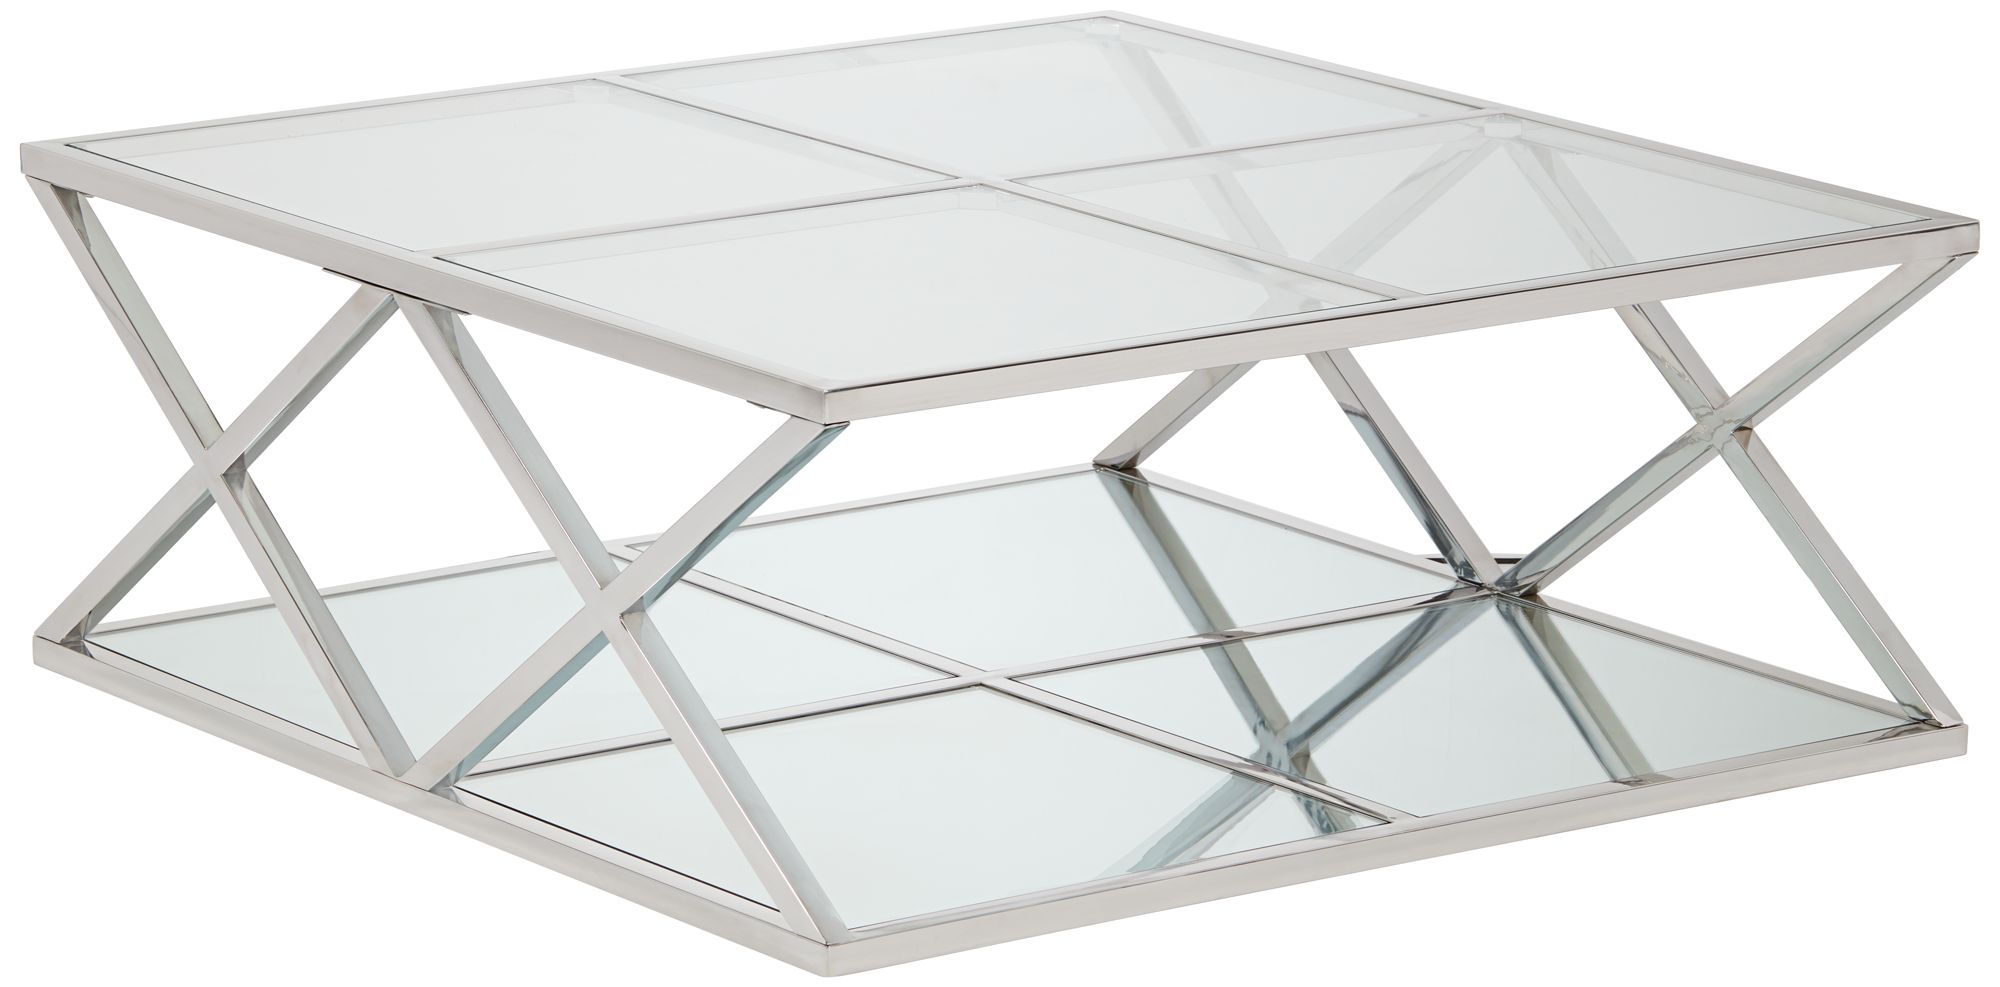 Captivating Skylar Square Metal Coffee Table With Mirror Top